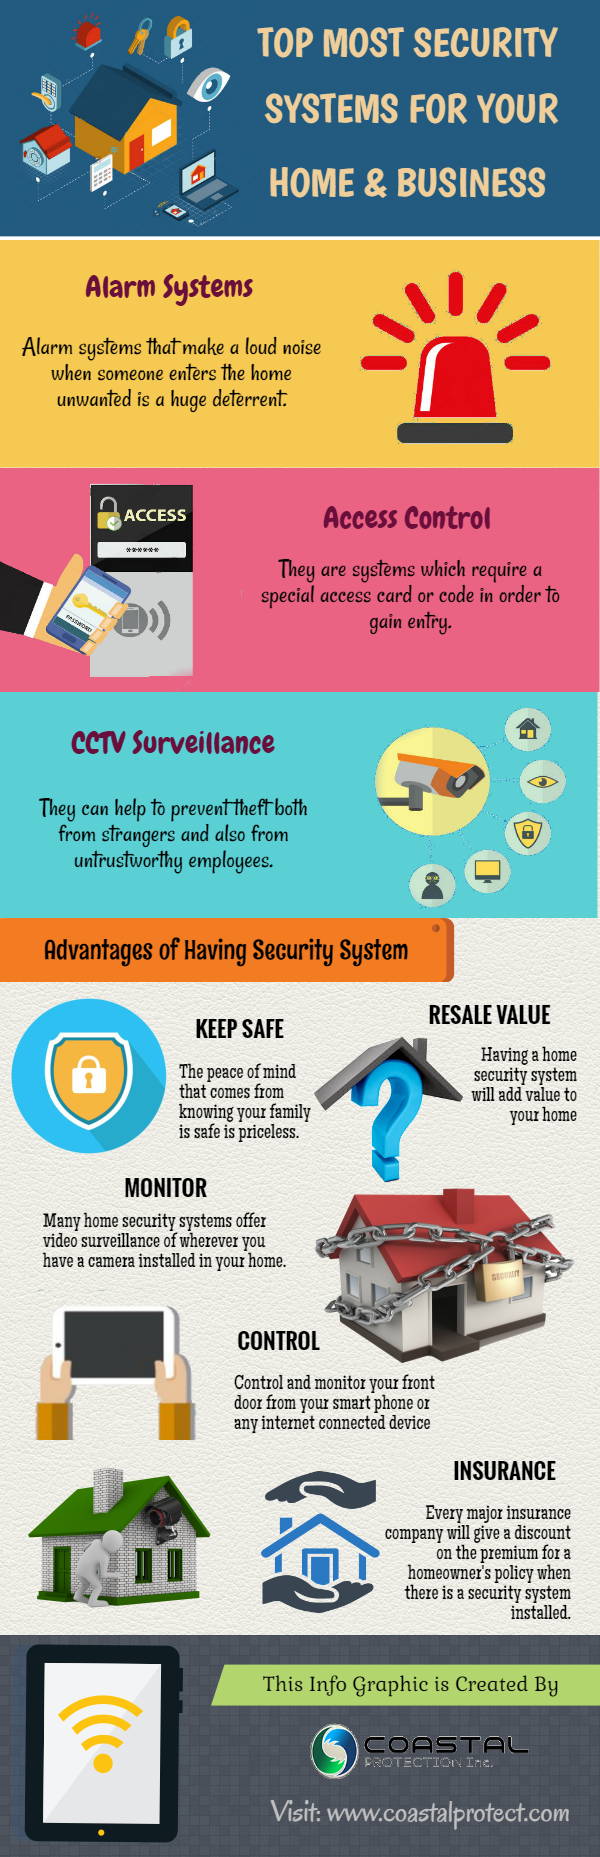 Home Security Devices In Florida Home Security Alarm Home